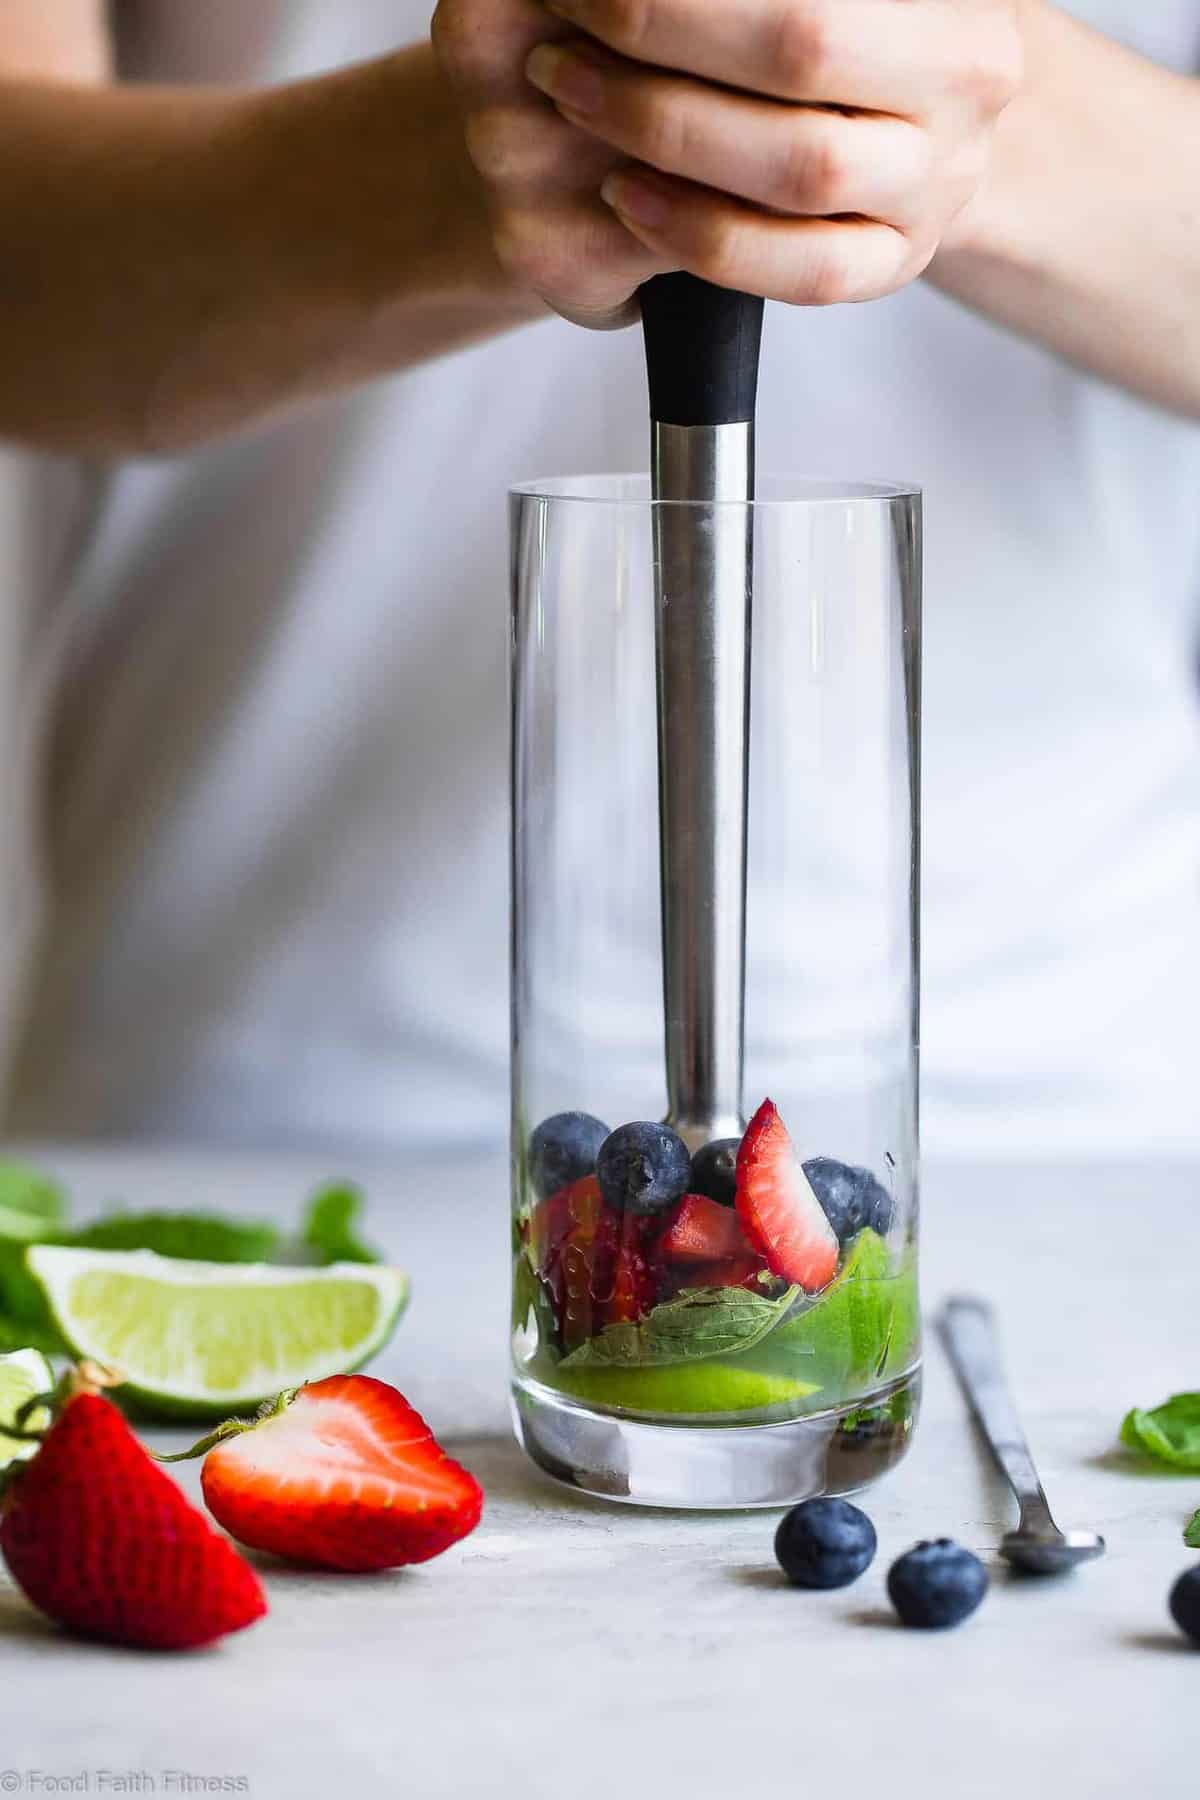 Red White and Blueberry Coconut Mojitos - This coconut blueberry mojito recipe with strawberries is a healthier, gluten free, easy Summer drink with only 130 calories and no sugar! Perfect for July 4th! | #Foodfaithfitness | #Mojito #July4th #Healthy #SugarFree #Glutenfree